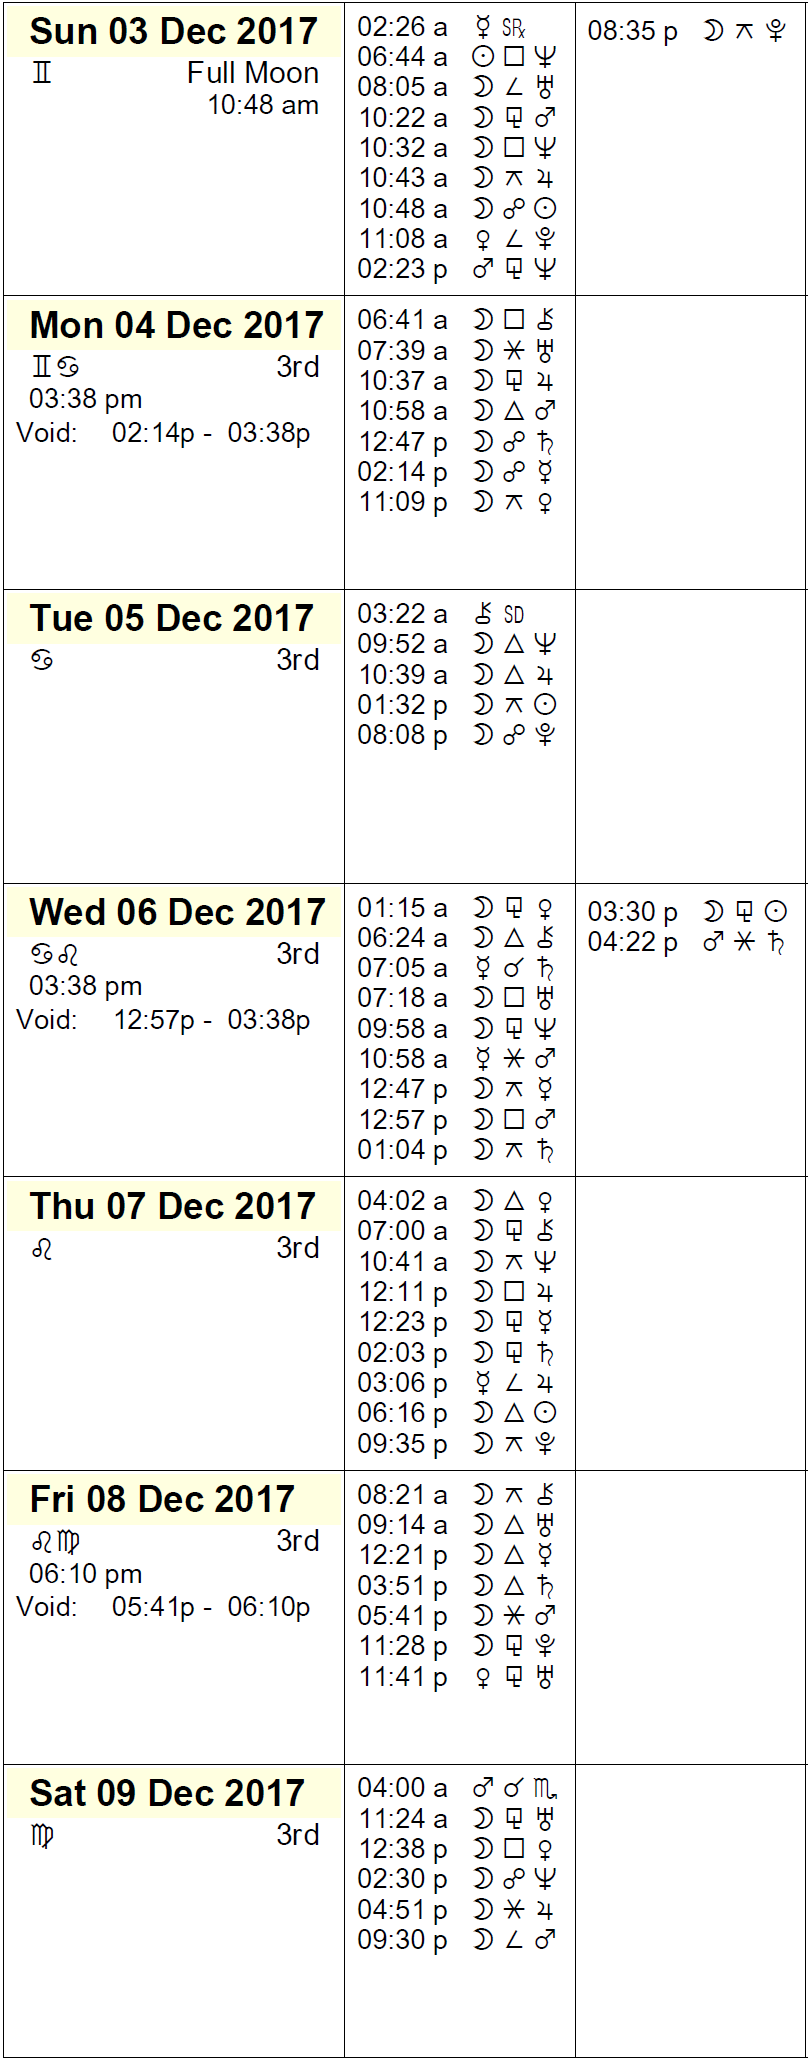 This Week in Astrology Calendar: December 3rd to 9th, 2017